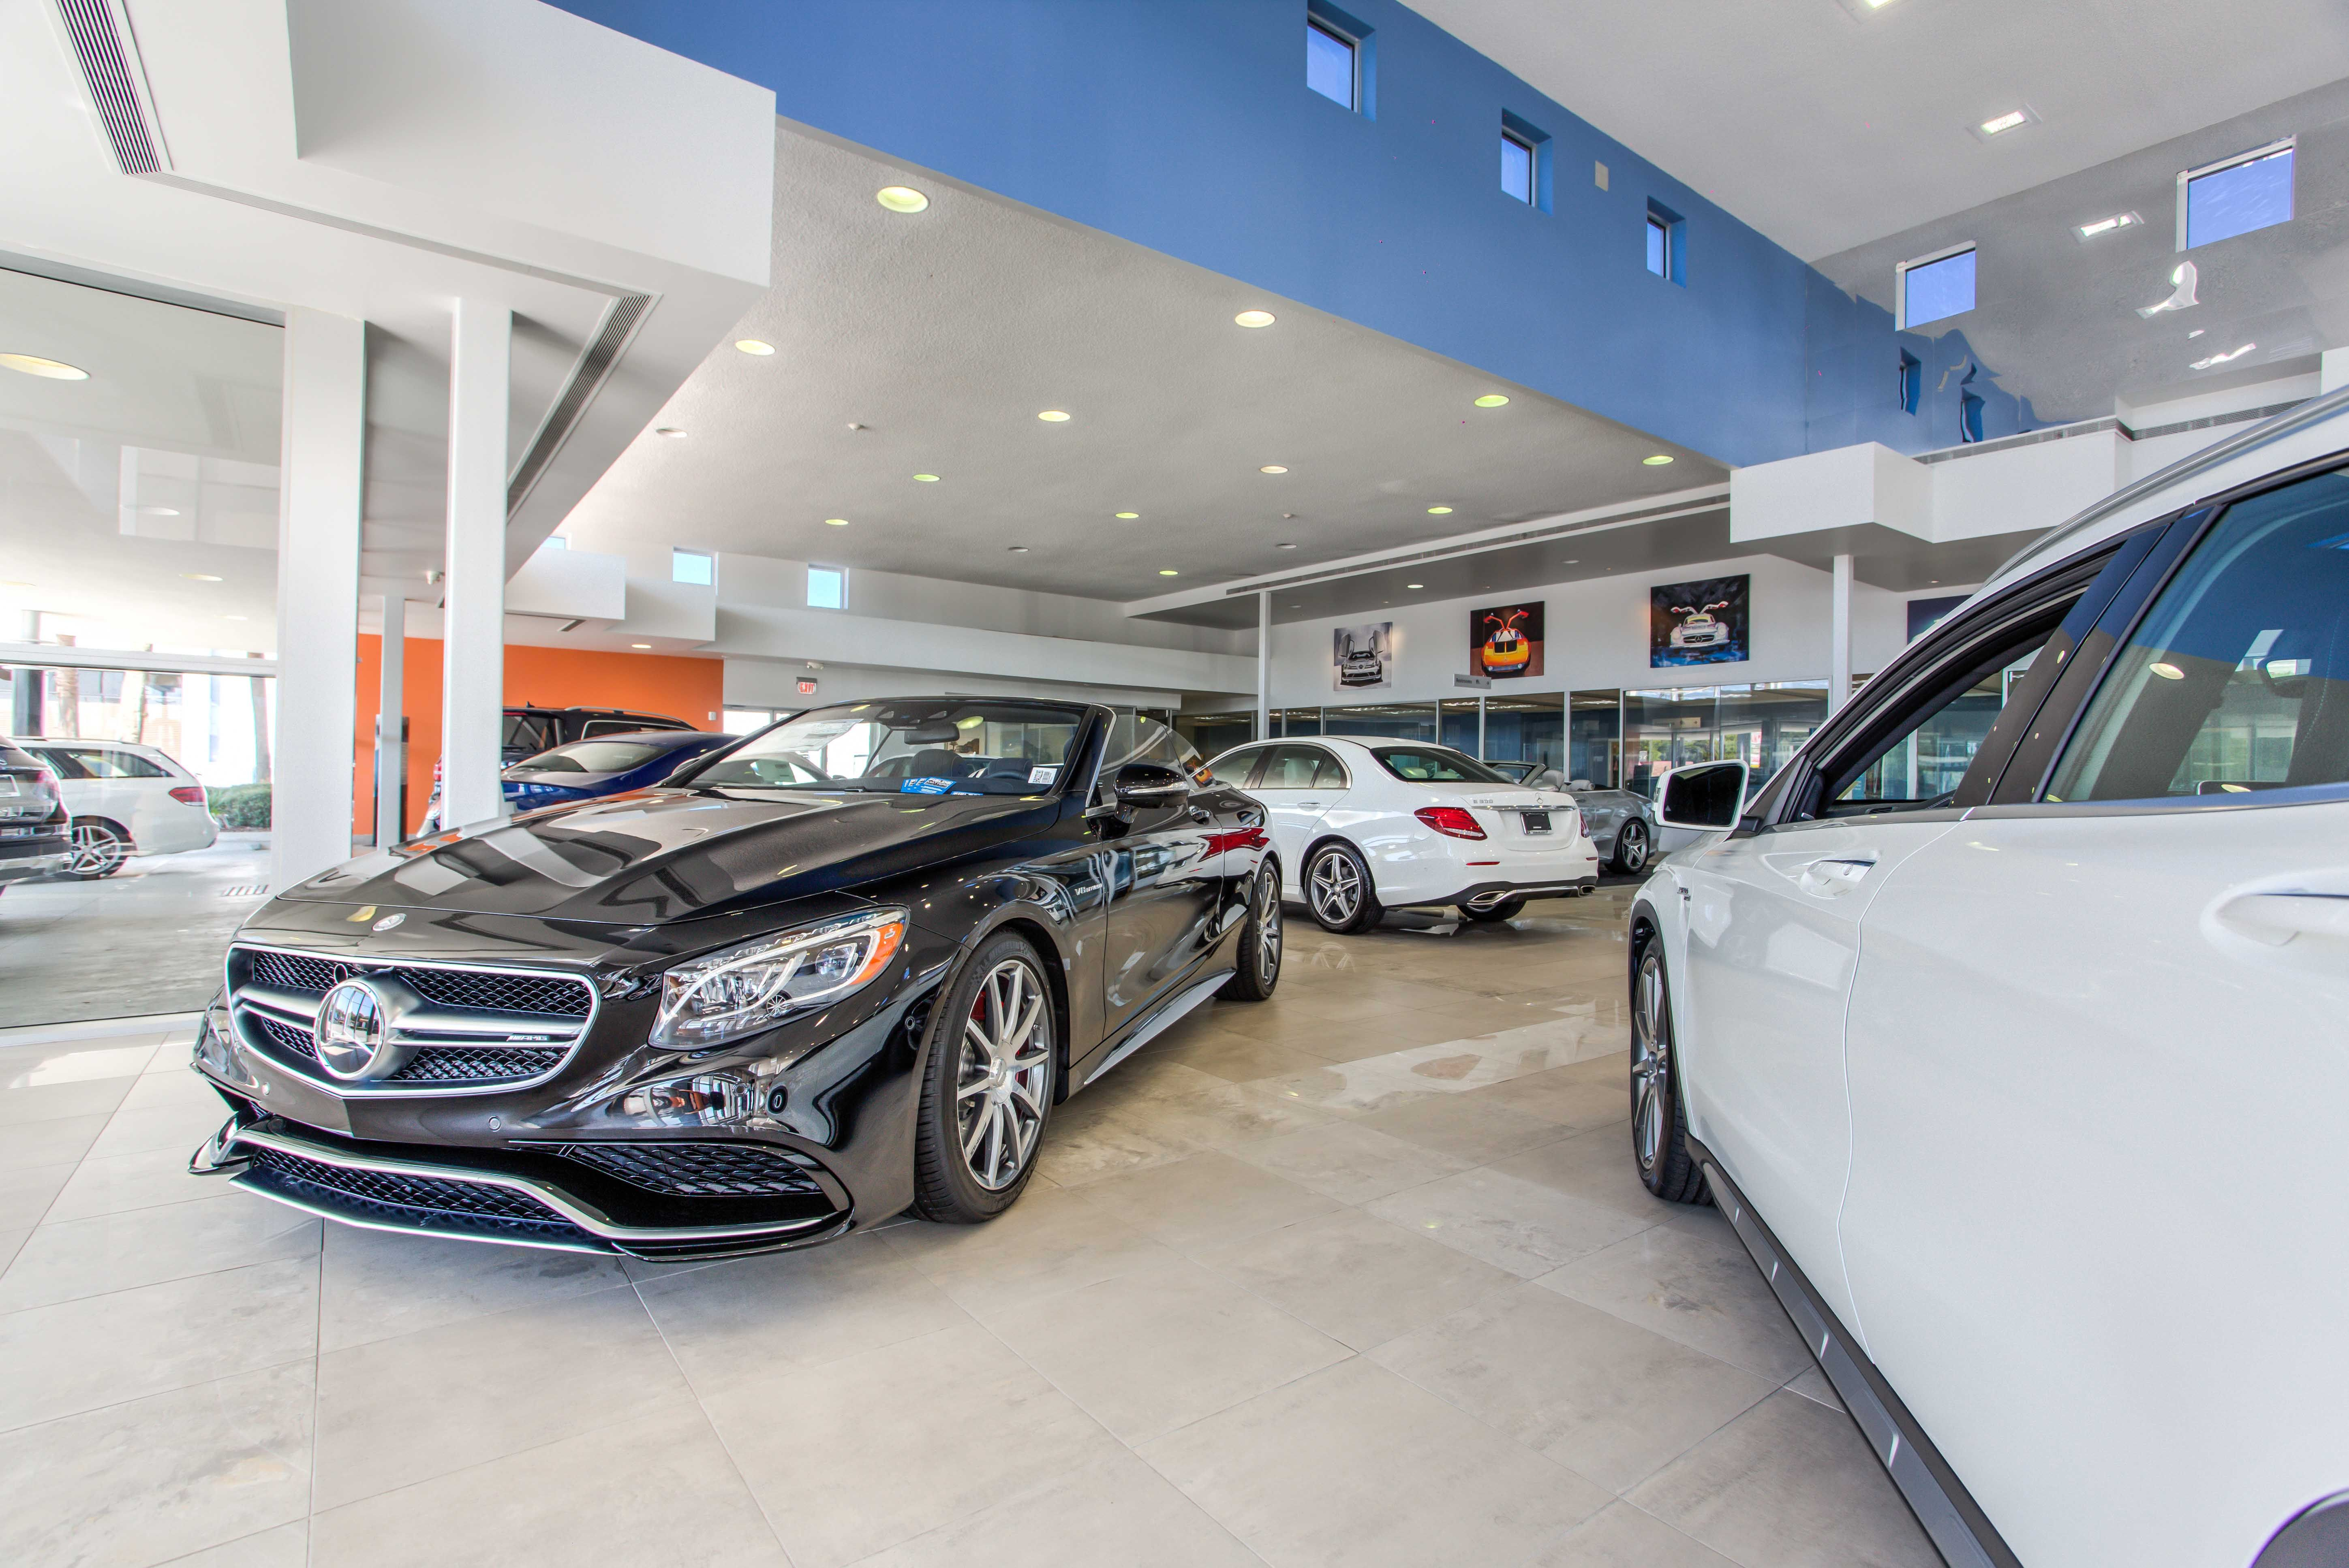 we are an authorized mercedes benz dealer in jacksonville fl mercedes benz of jacksonville treats the needs of mercedes benz dealer mercedes benz car dealer we are an authorized mercedes benz dealer in jacksonville fl mercedes benz of jacksonville treats the needs of mercedes benz dealer mercedes benz car dealer